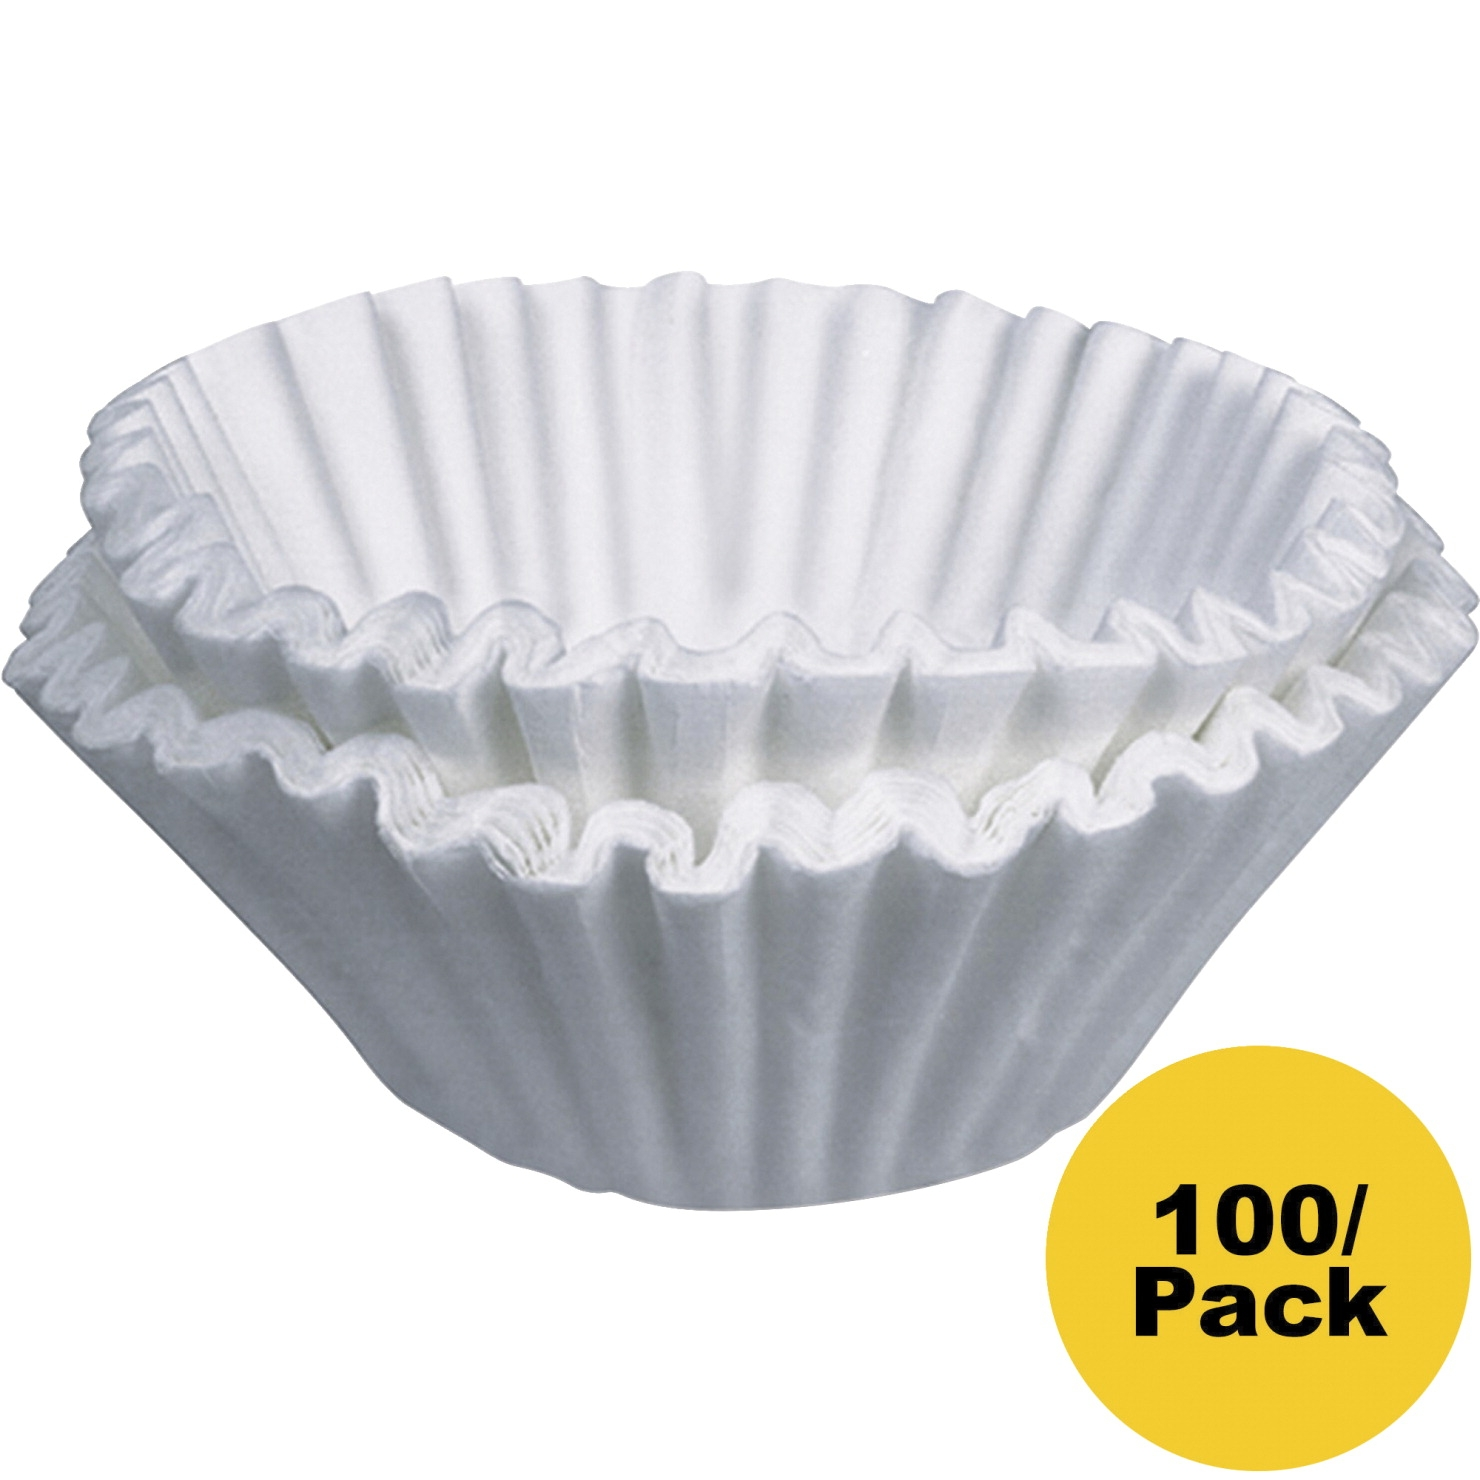 Bunn-o-matic Home Brewer Coffee Filter; 2-3/4 X 3 In; White; Pack Of 100 - 1056241 - Facilities Management Facility Supplies Machines Appliances Kitchen Appliances 1056241